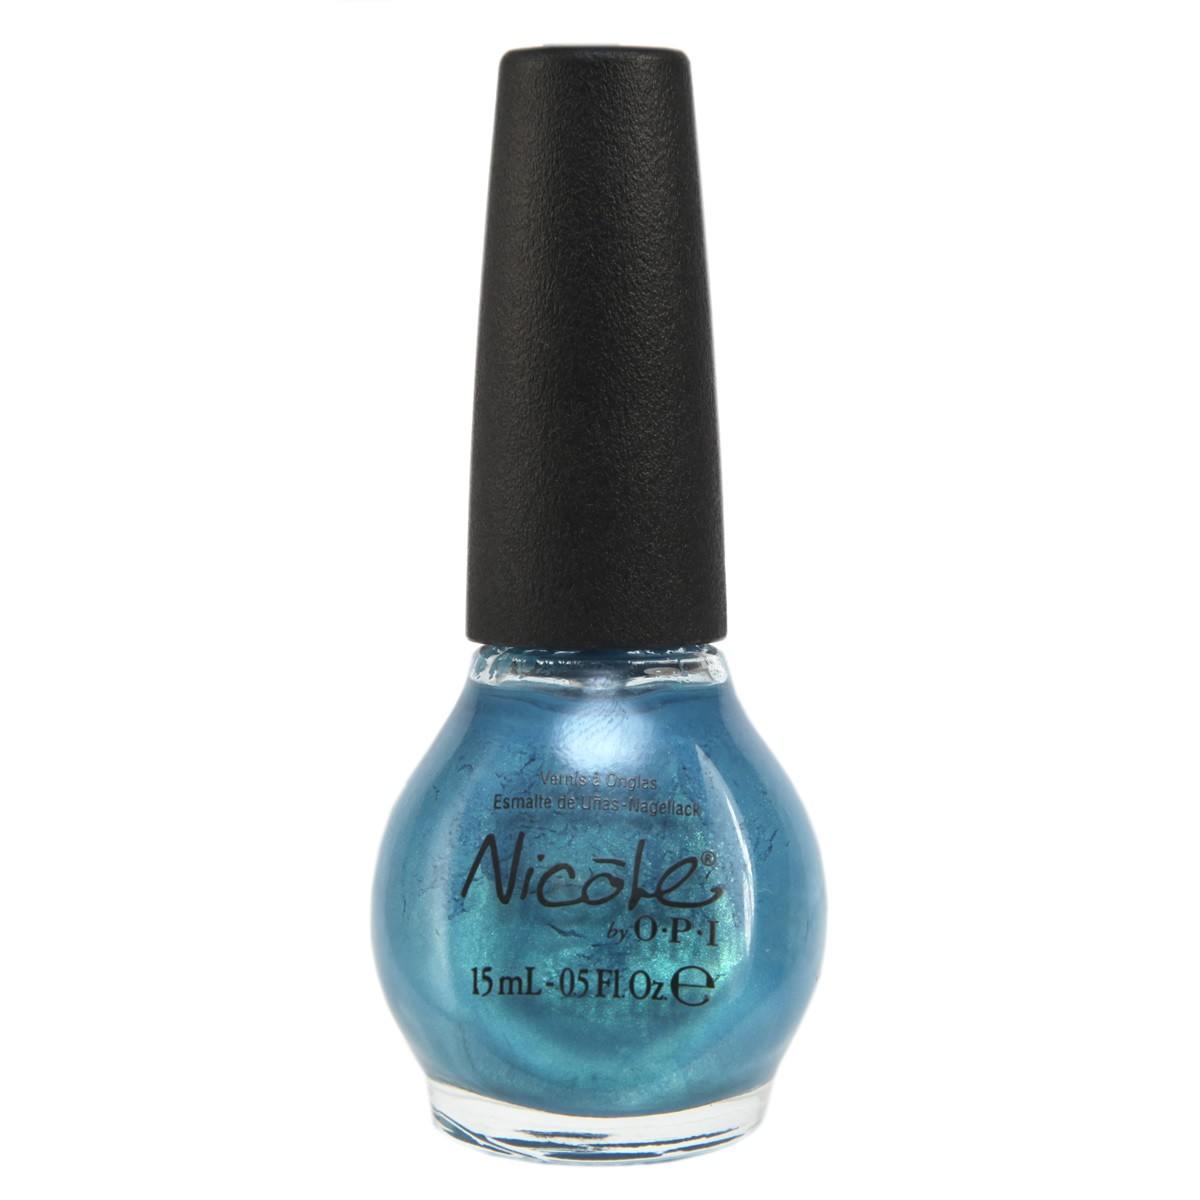 Nicole By OPI Nail Polish - Blue Lace